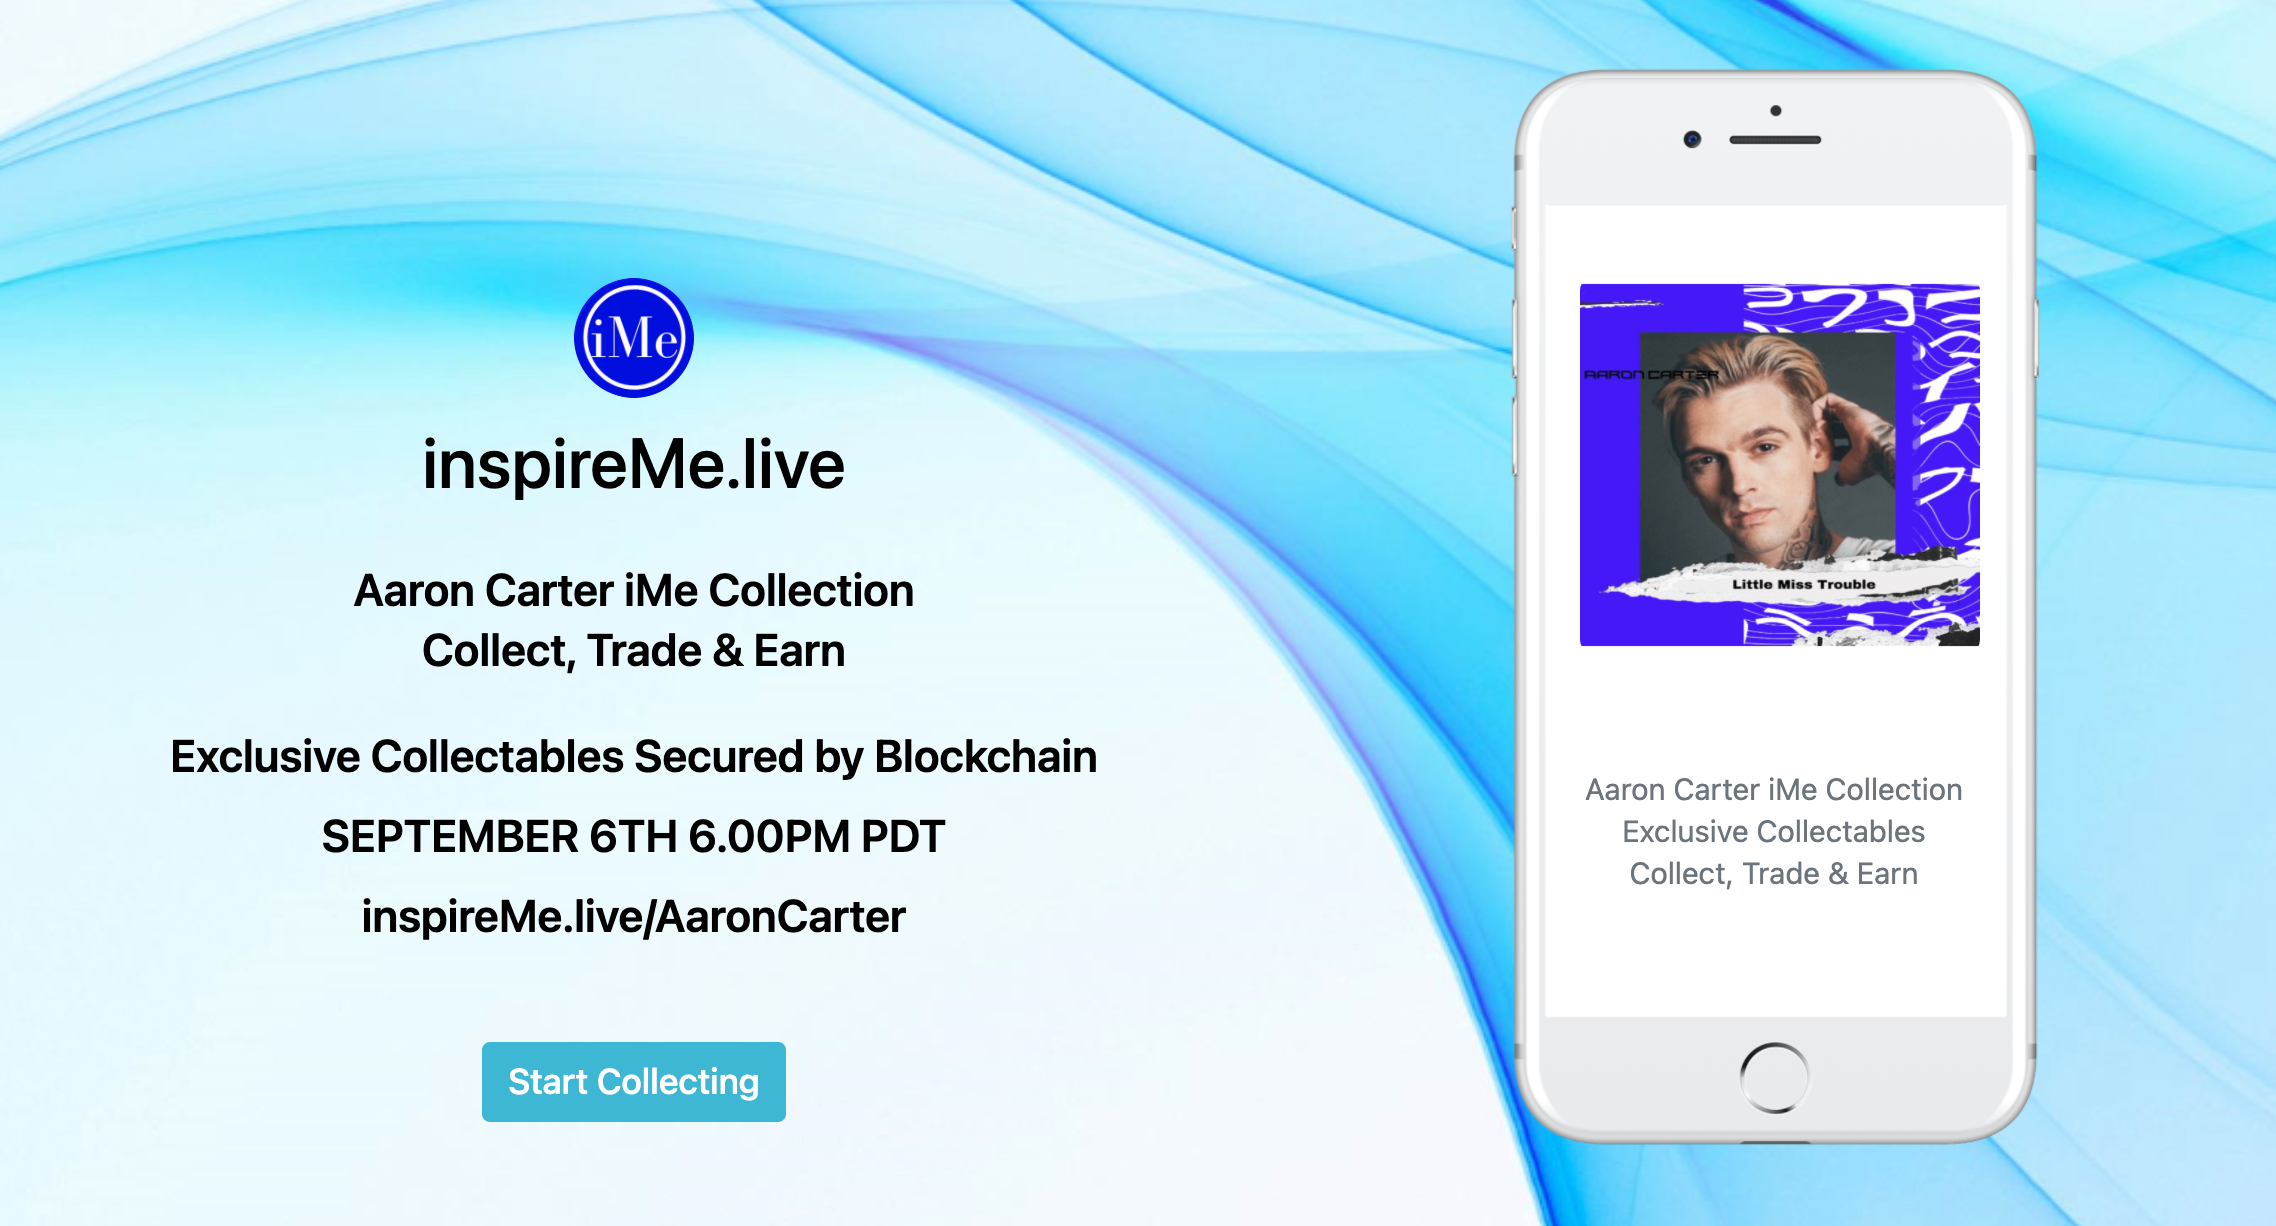 Aaron Carter iMe Collection Mobelization